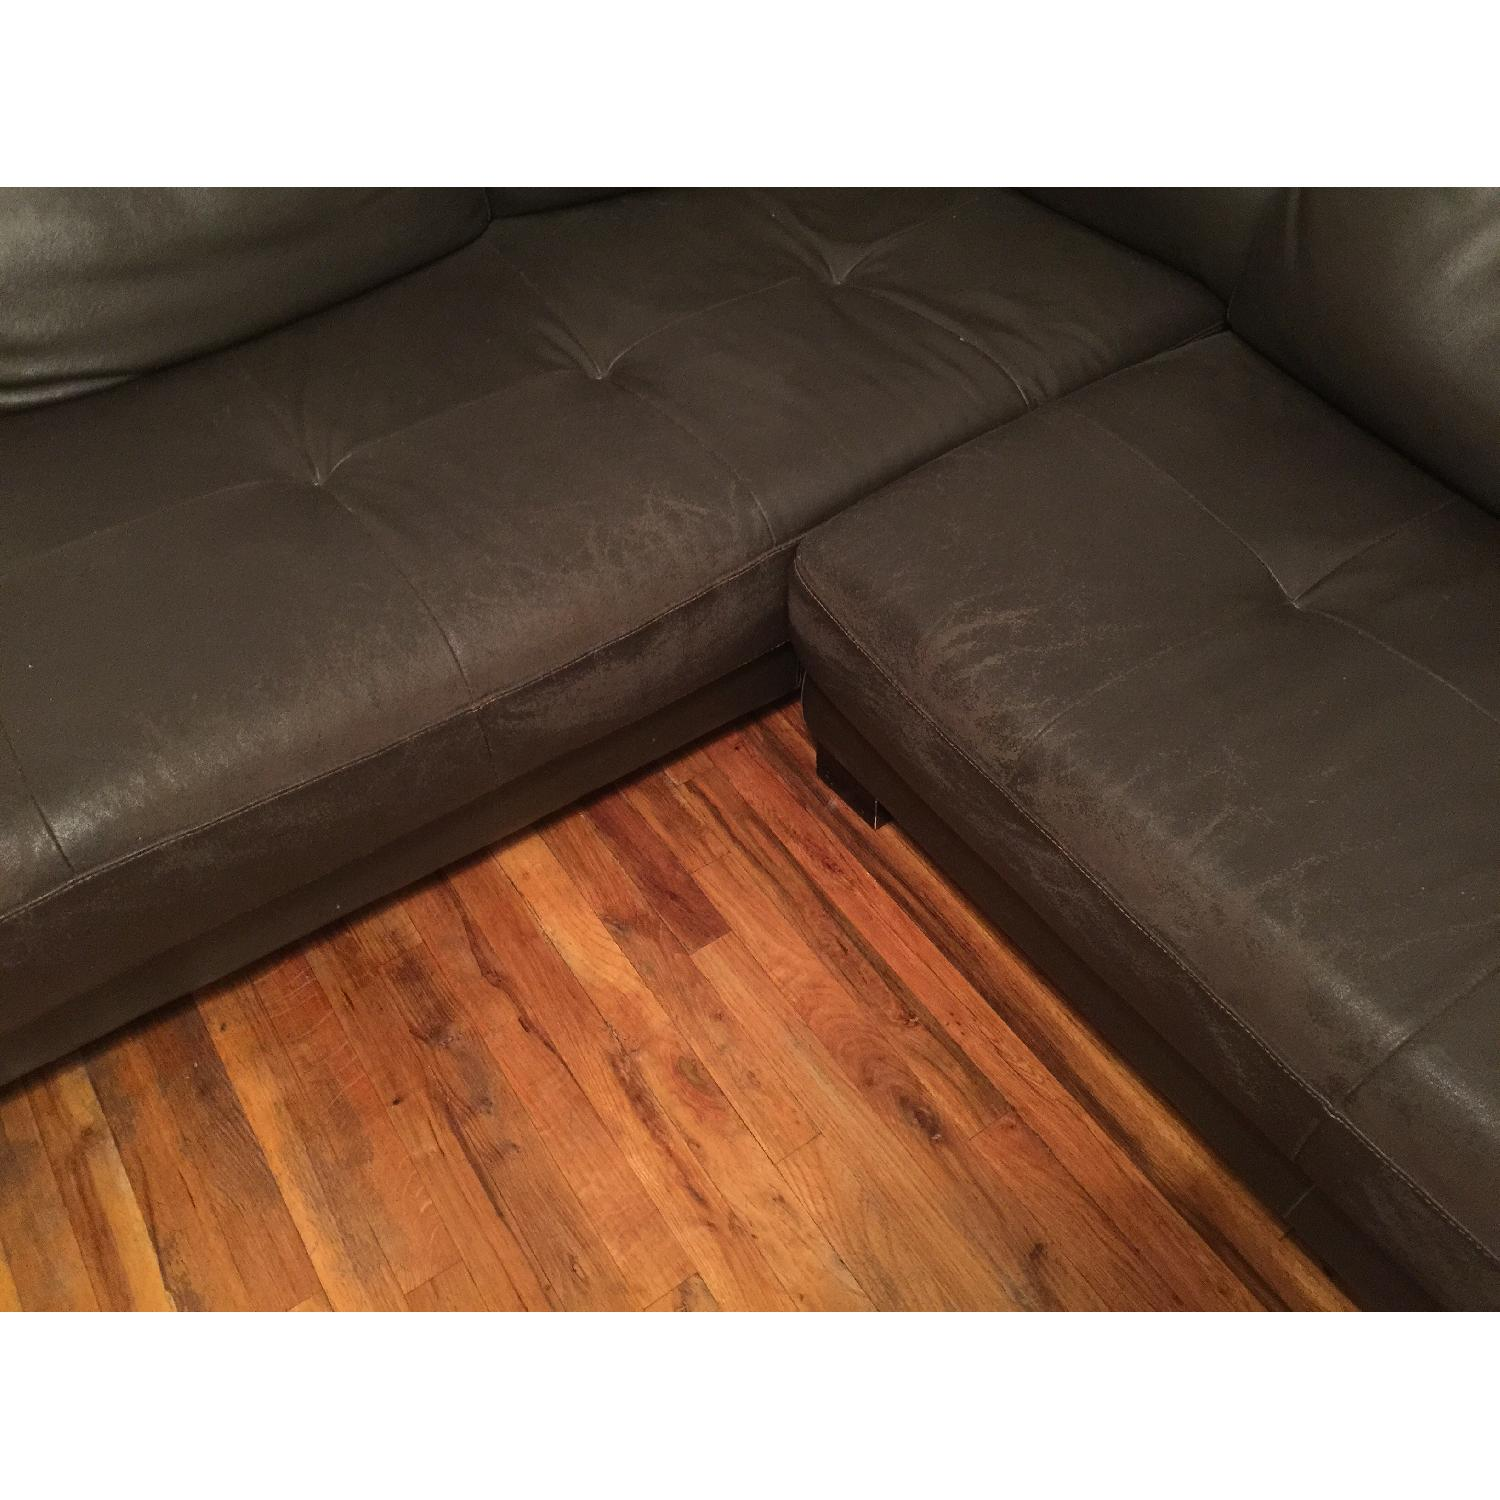 Black Leather 2 Piece Sectional Sofa - image-3